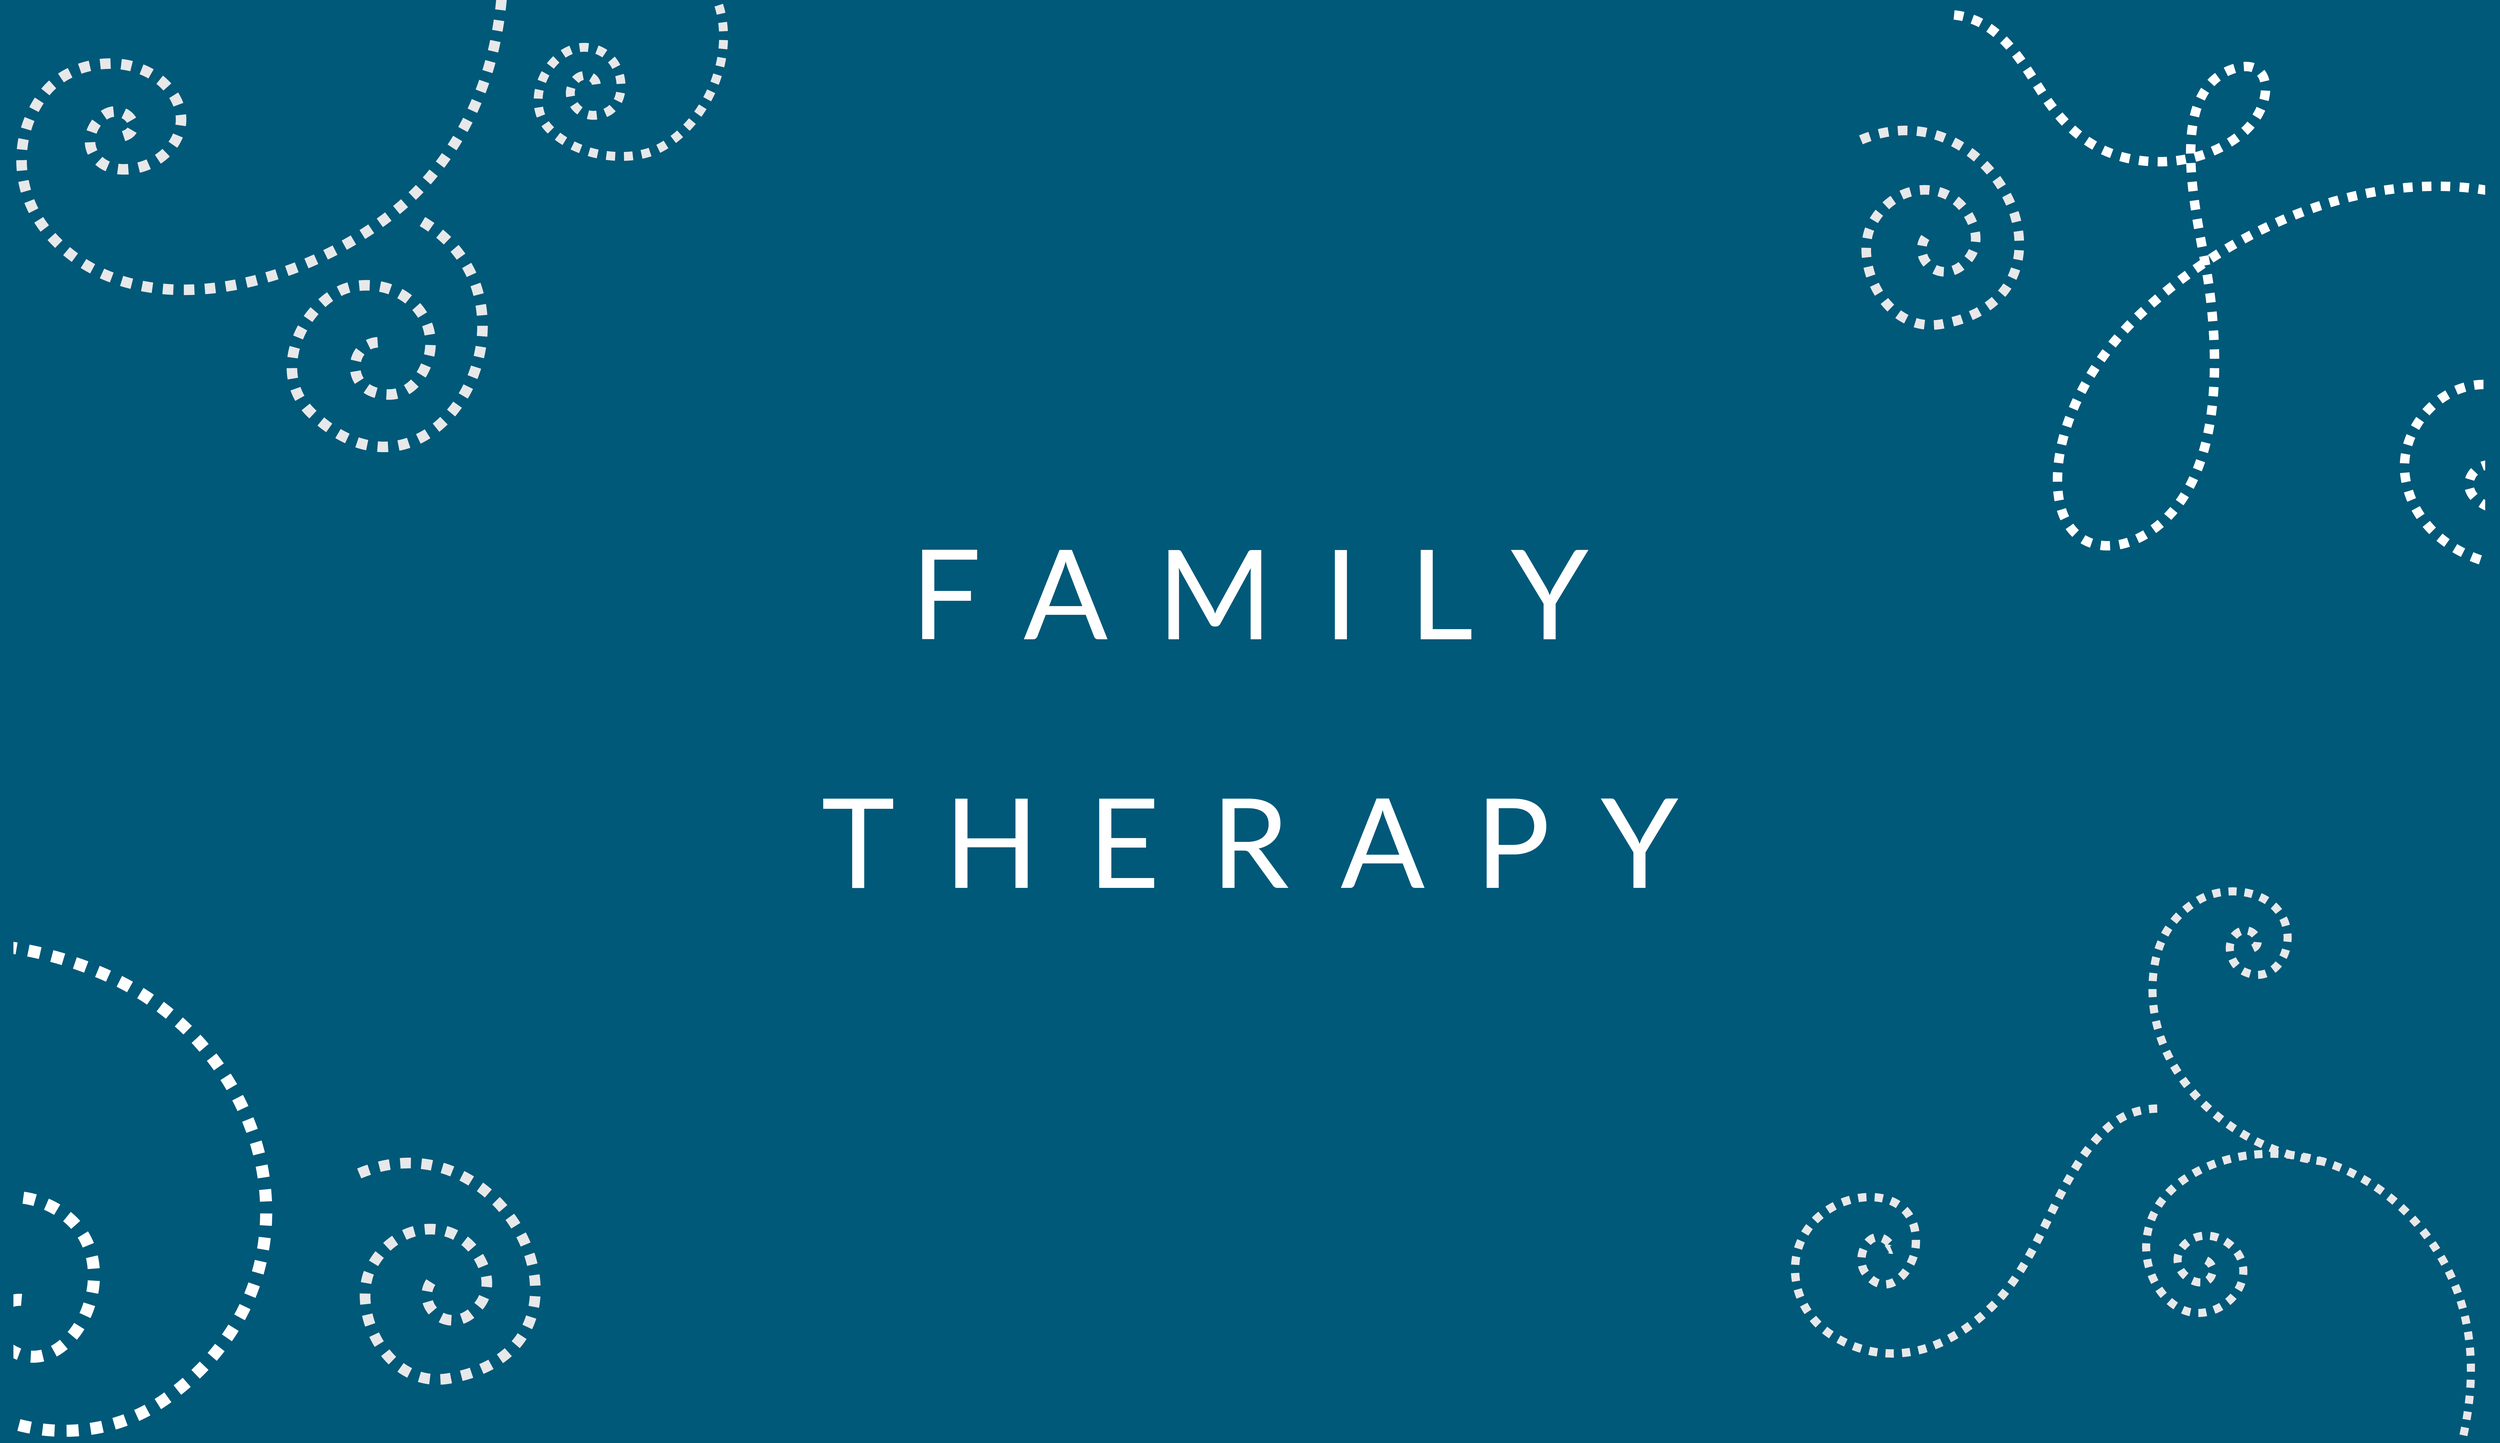 Family-Therapy